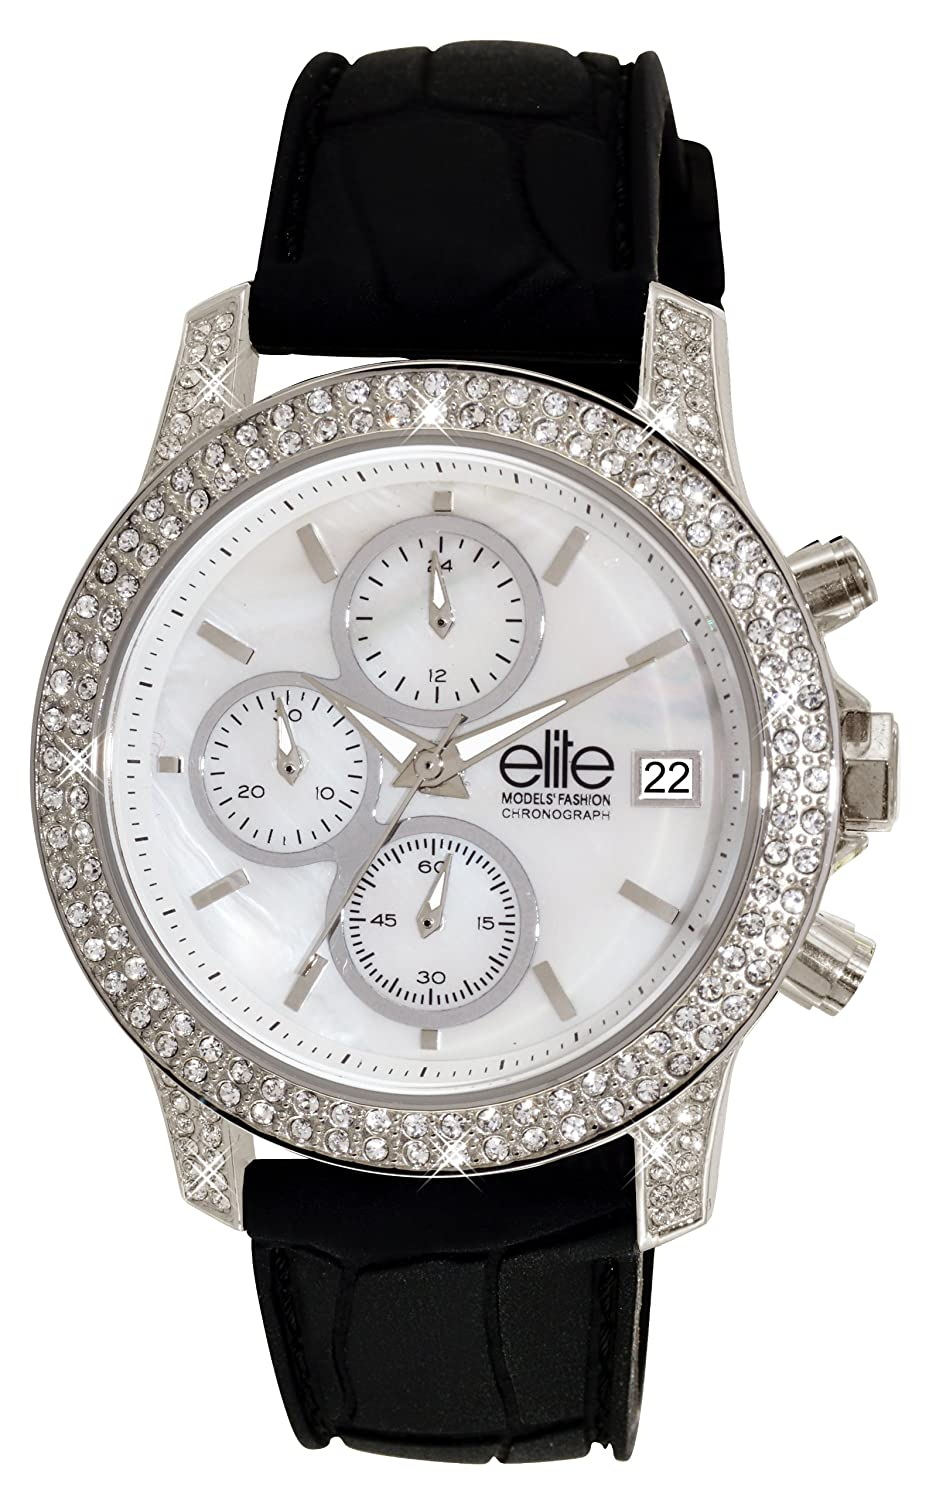 Elite Models' Fashion Damen-Armbanduhr E53469-201